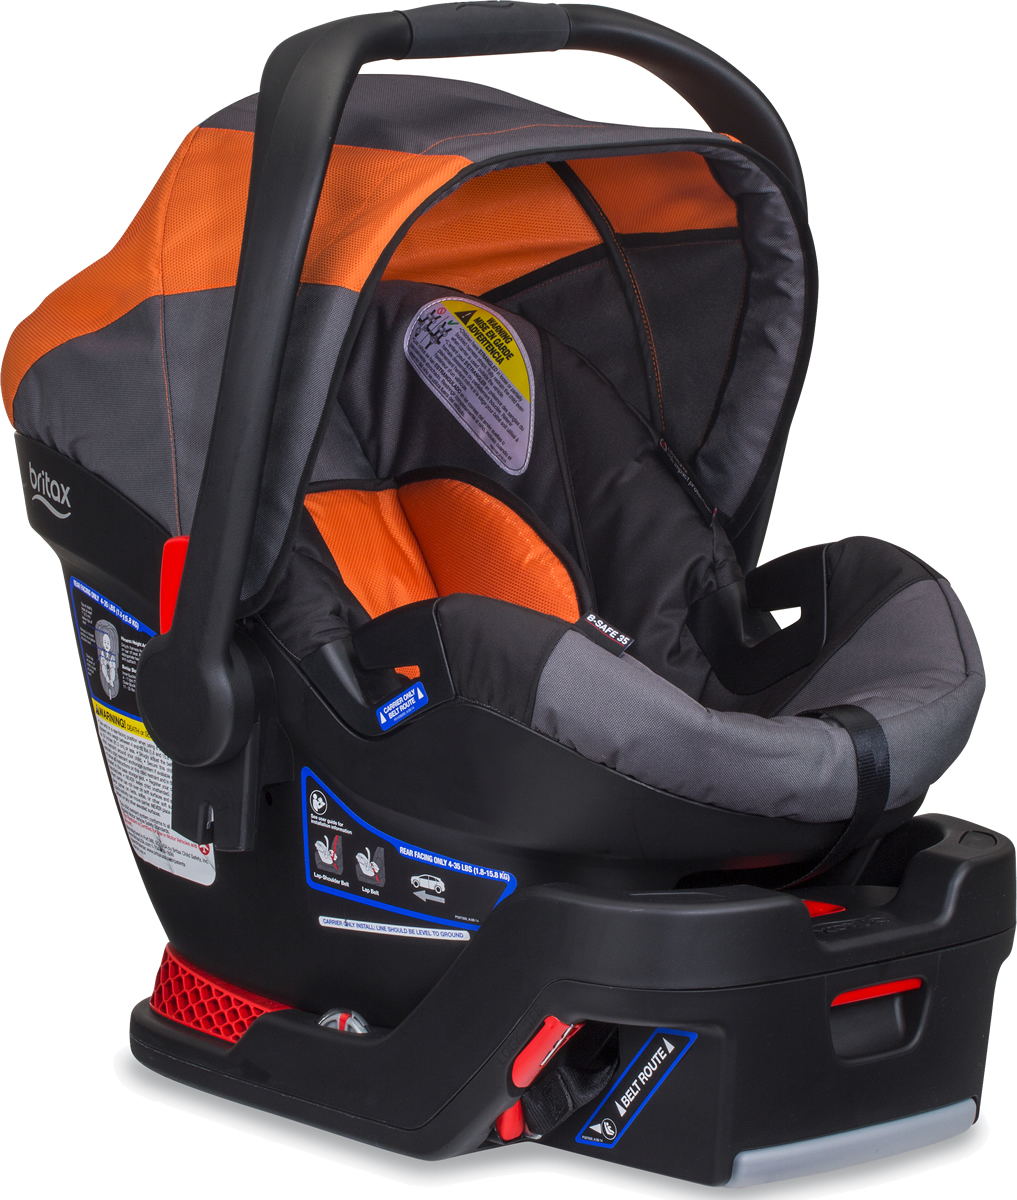 Made Usa Baby Carseat